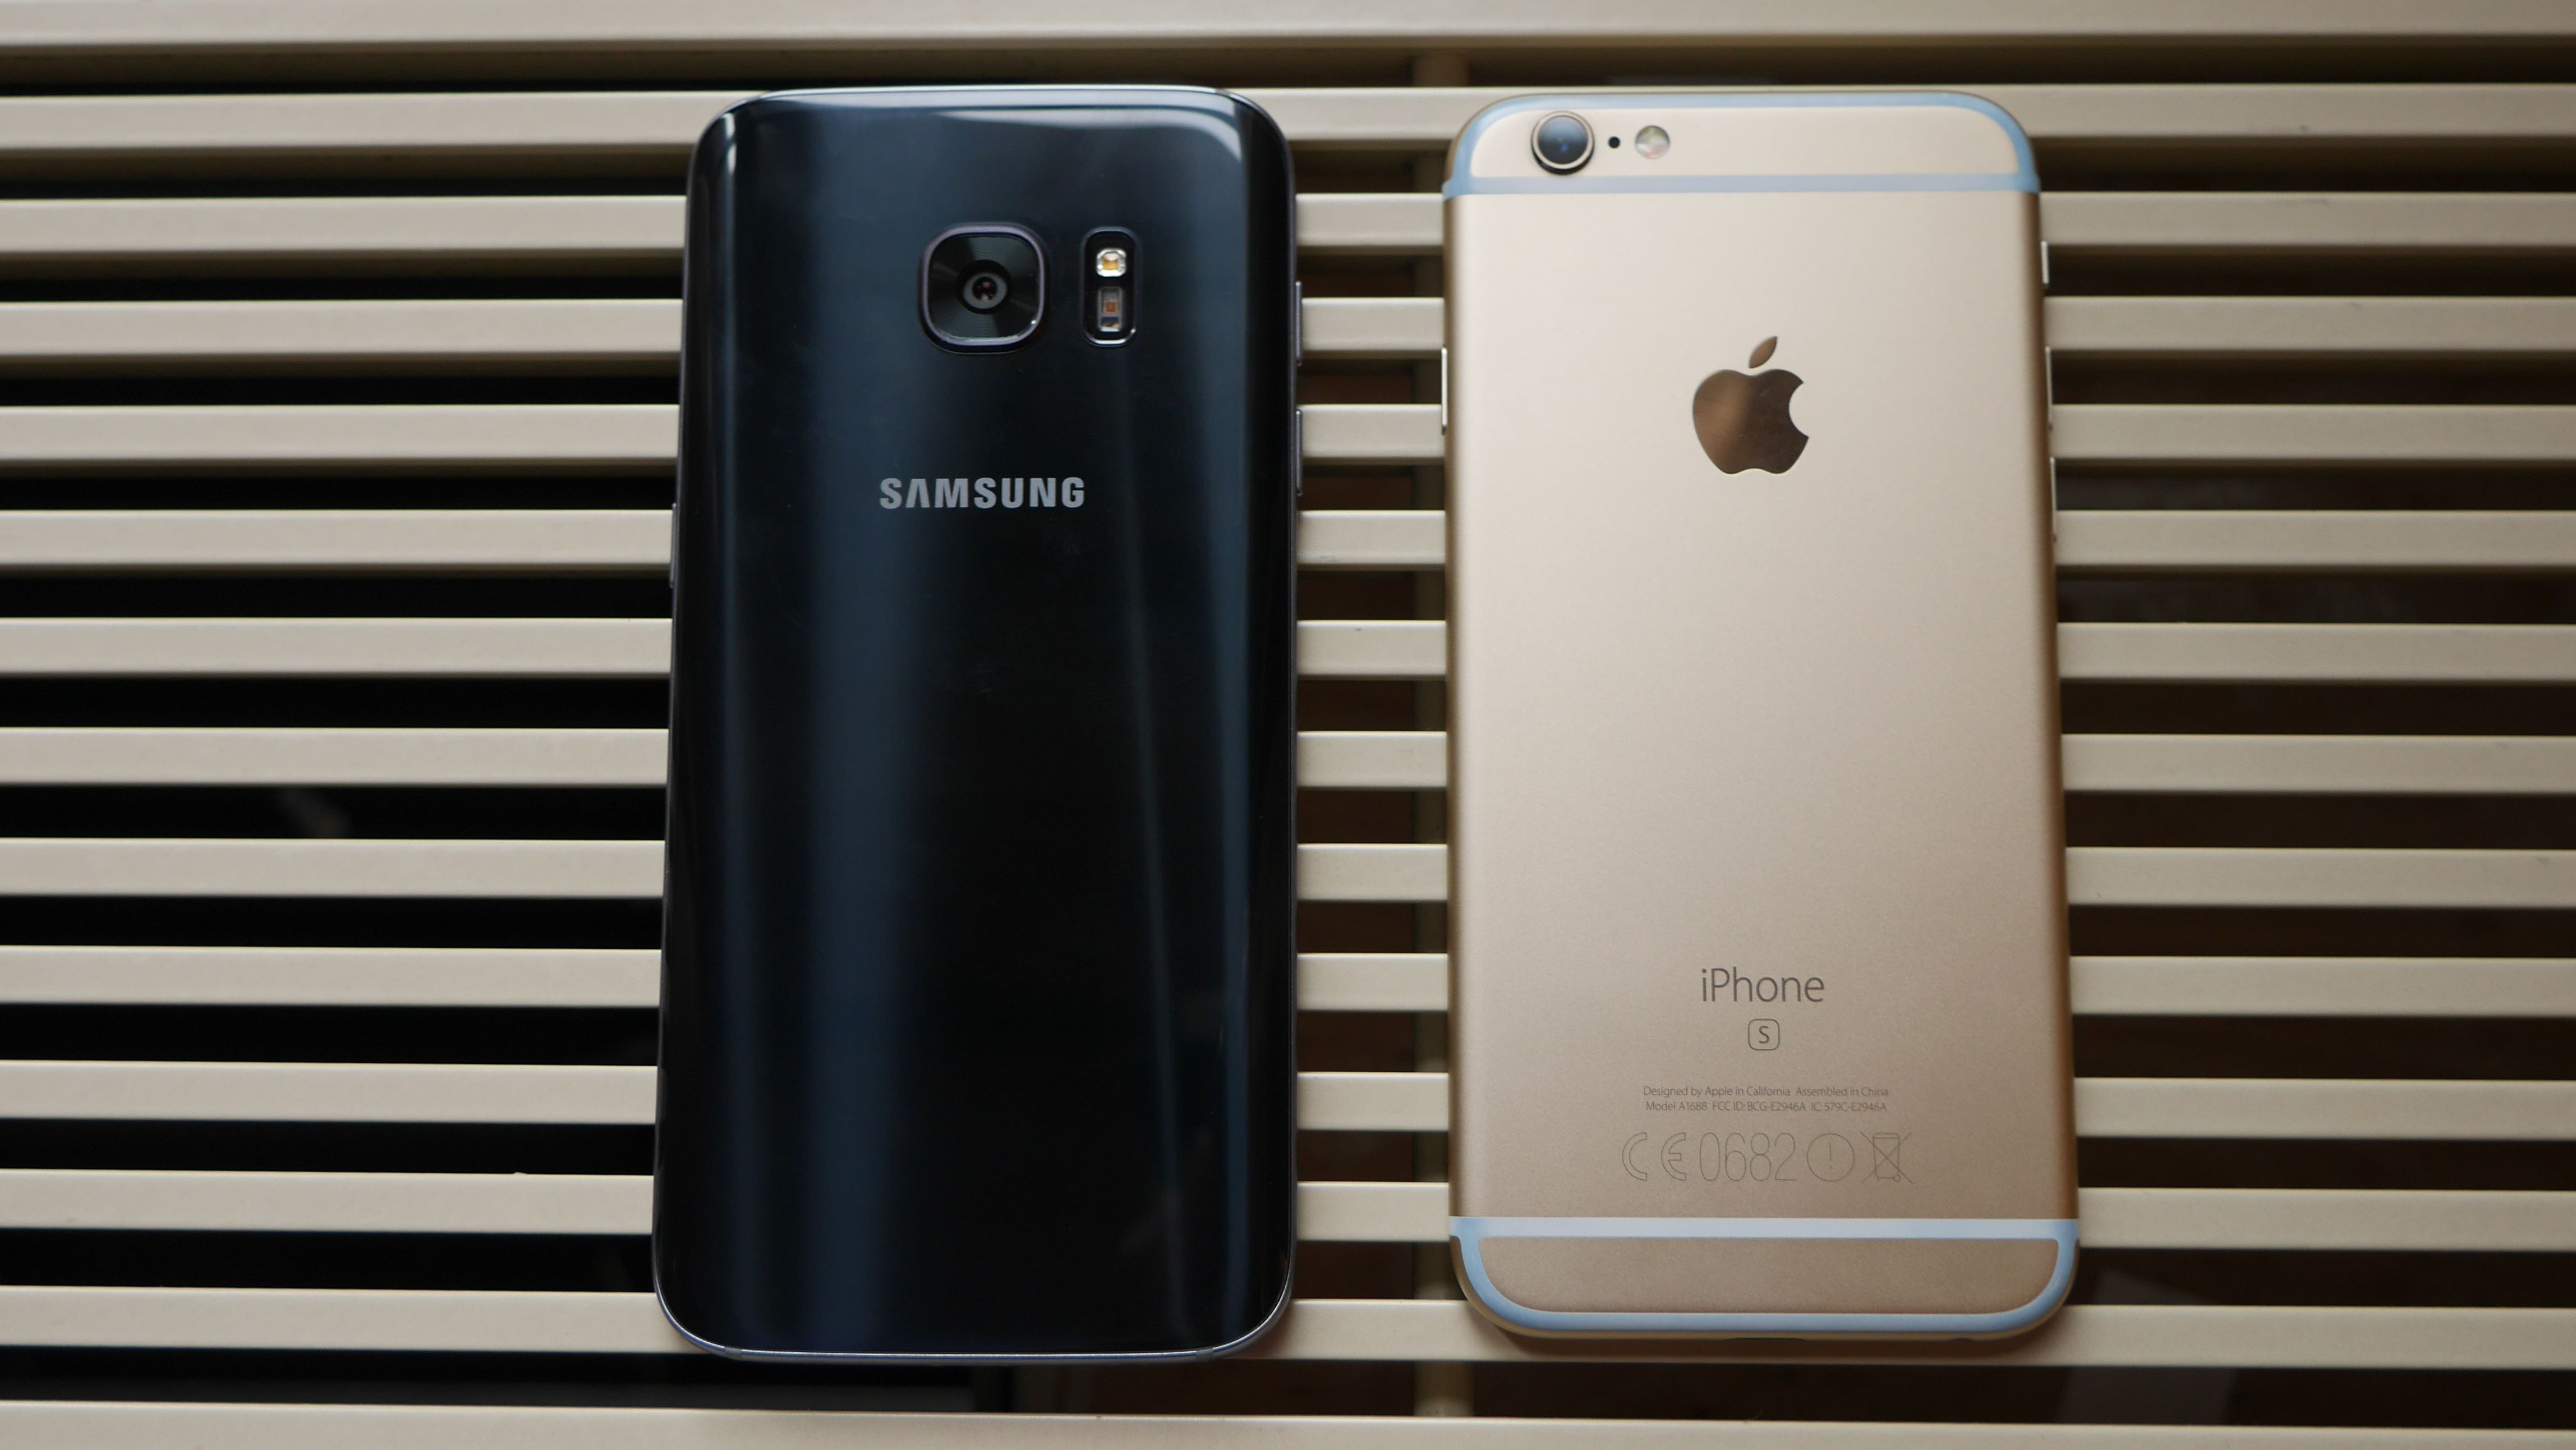 Samsung Galaxy S7 vs iPhone 6S: Which flagship phone is best